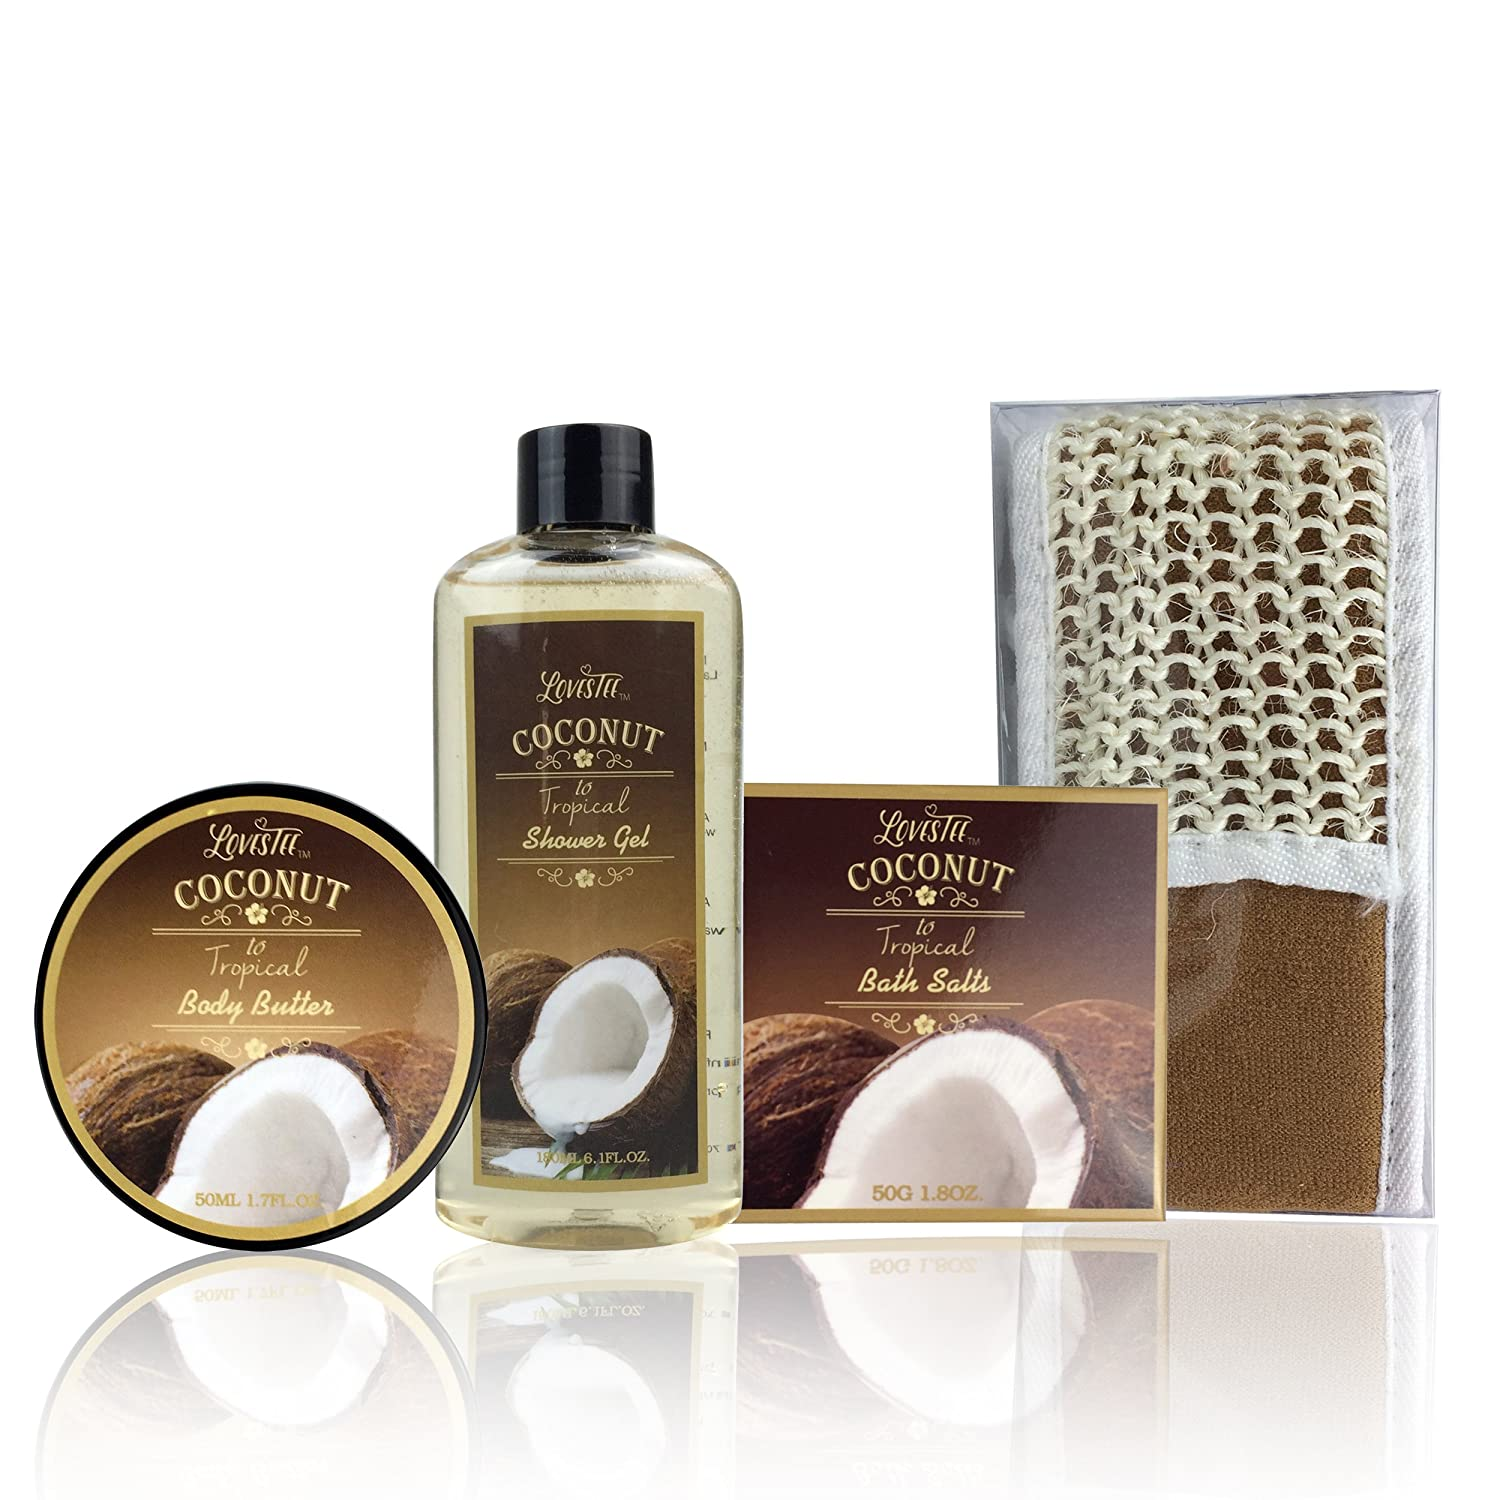 Spa Gift Basket and Bath Set with Refreshing Coconut Fragrance by Lovestee - Bath and Body Gift Set Includes Shower Gel Body Lotion Body Scrub Body Butter Bath Salt and Loofah Back Scrubber : Beauty